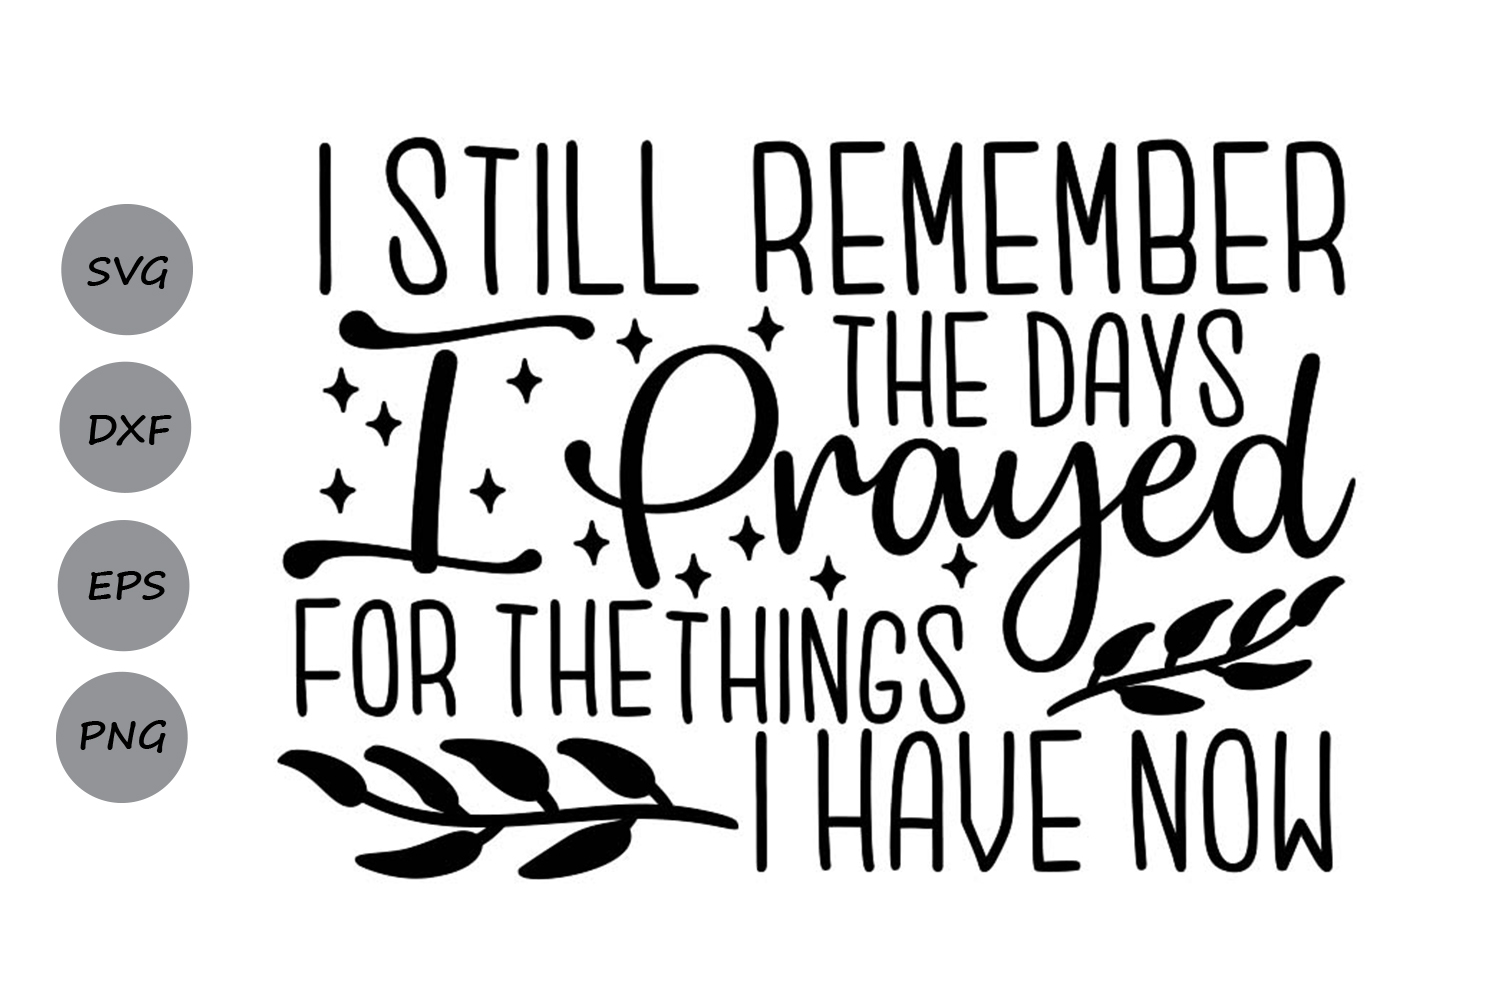 Download Free I Still Remember When I Prayed Svg Graphic By Cosmosfineart for Cricut Explore, Silhouette and other cutting machines.